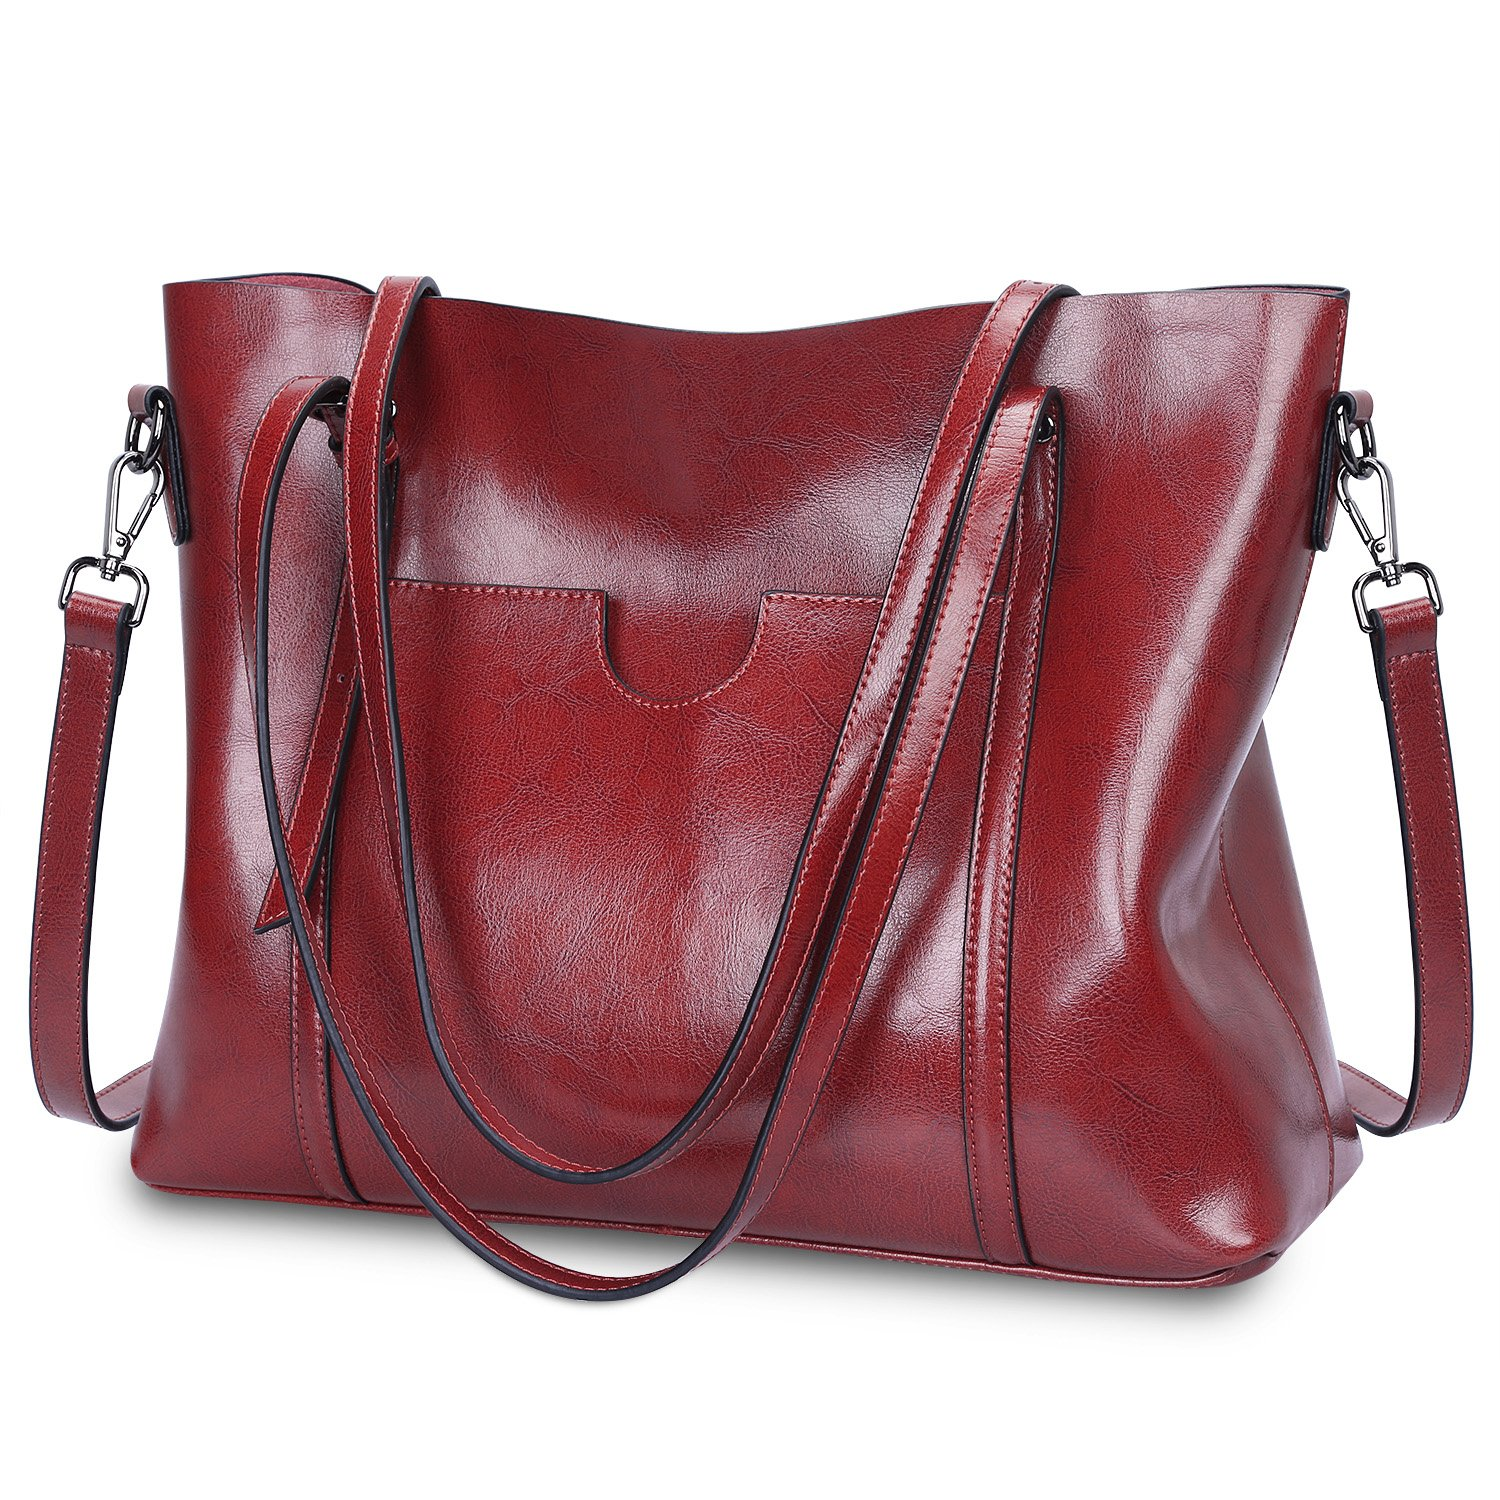 S-ZONE Women Genuine Leather Tote Purse Daily Casual Shoulder Bag Large Capacity (Wine Red)